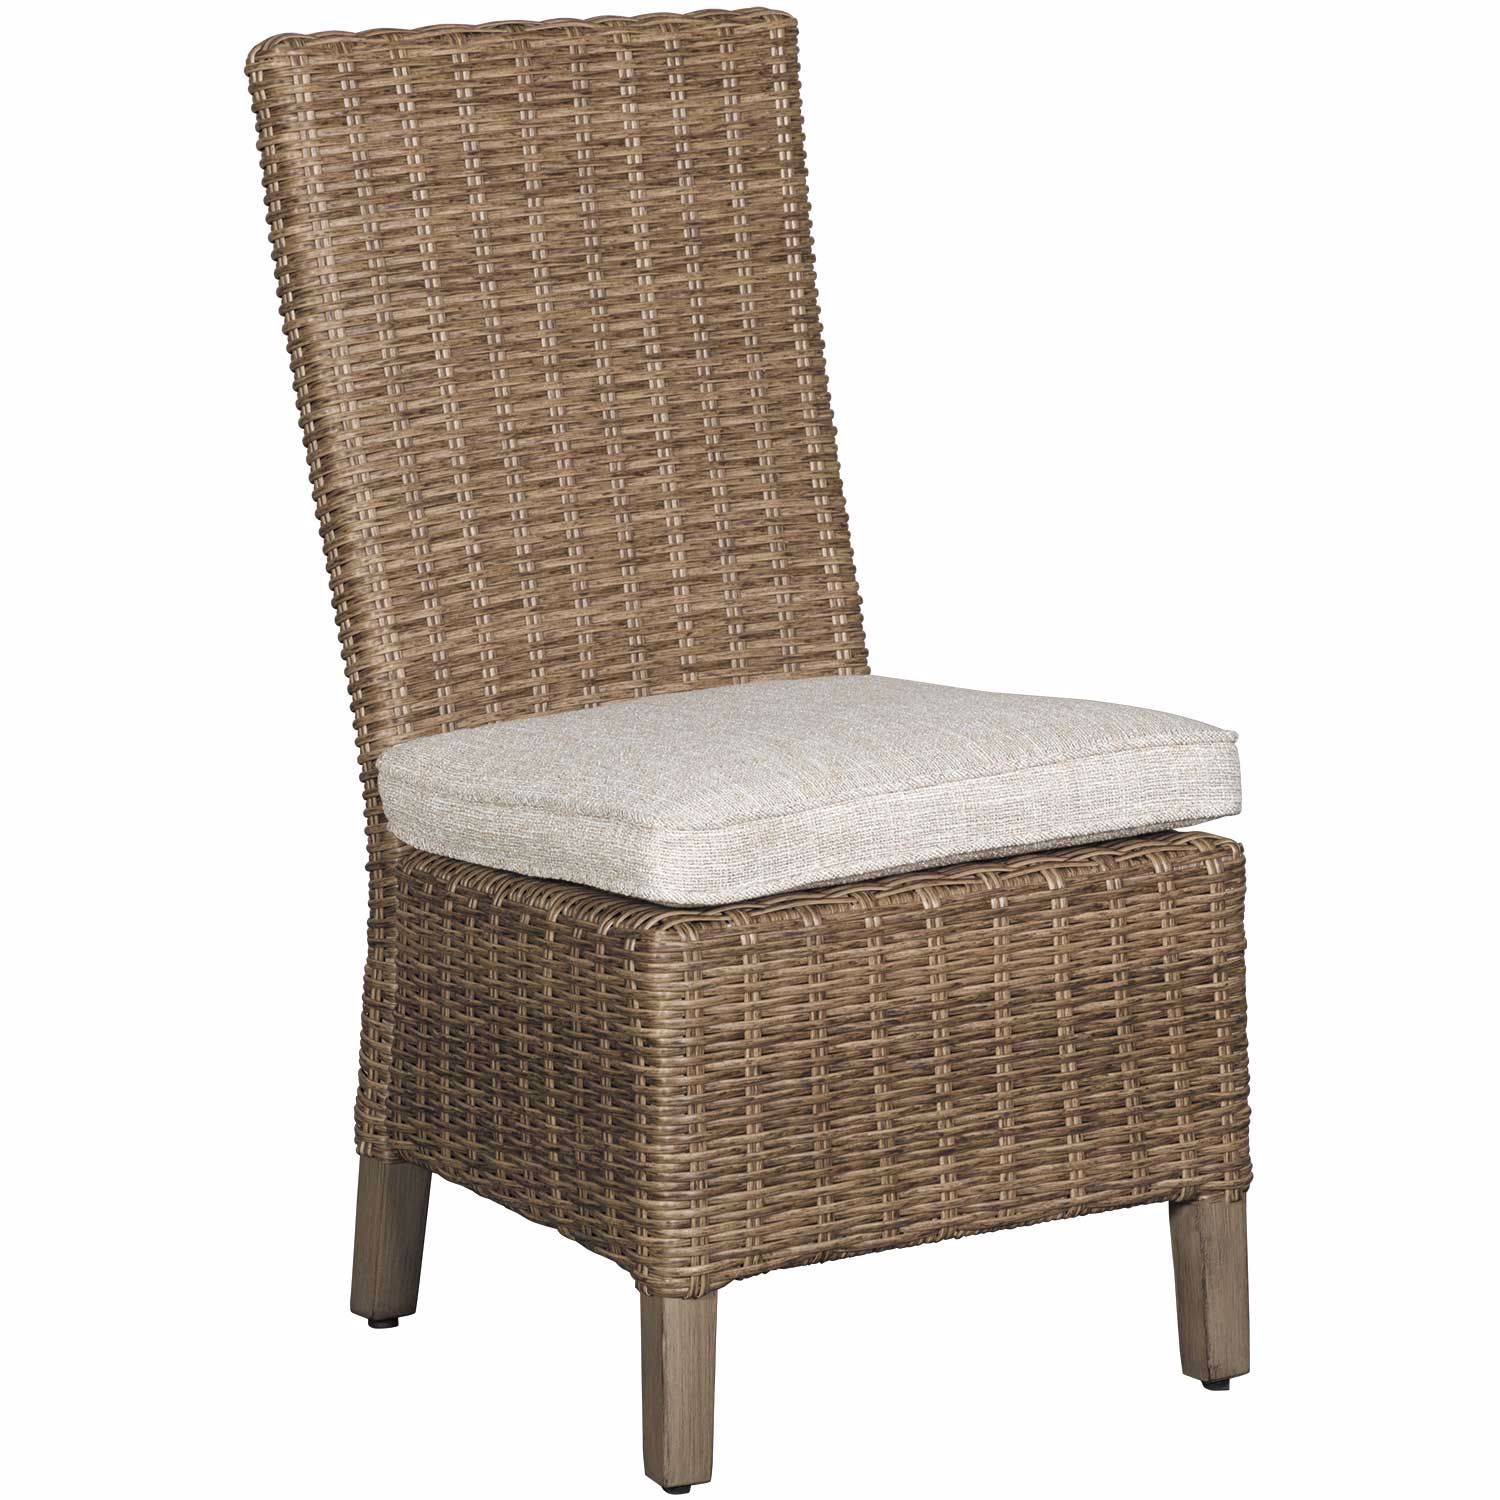 Picture of Beachcroft Outdoor Chair with Cushion